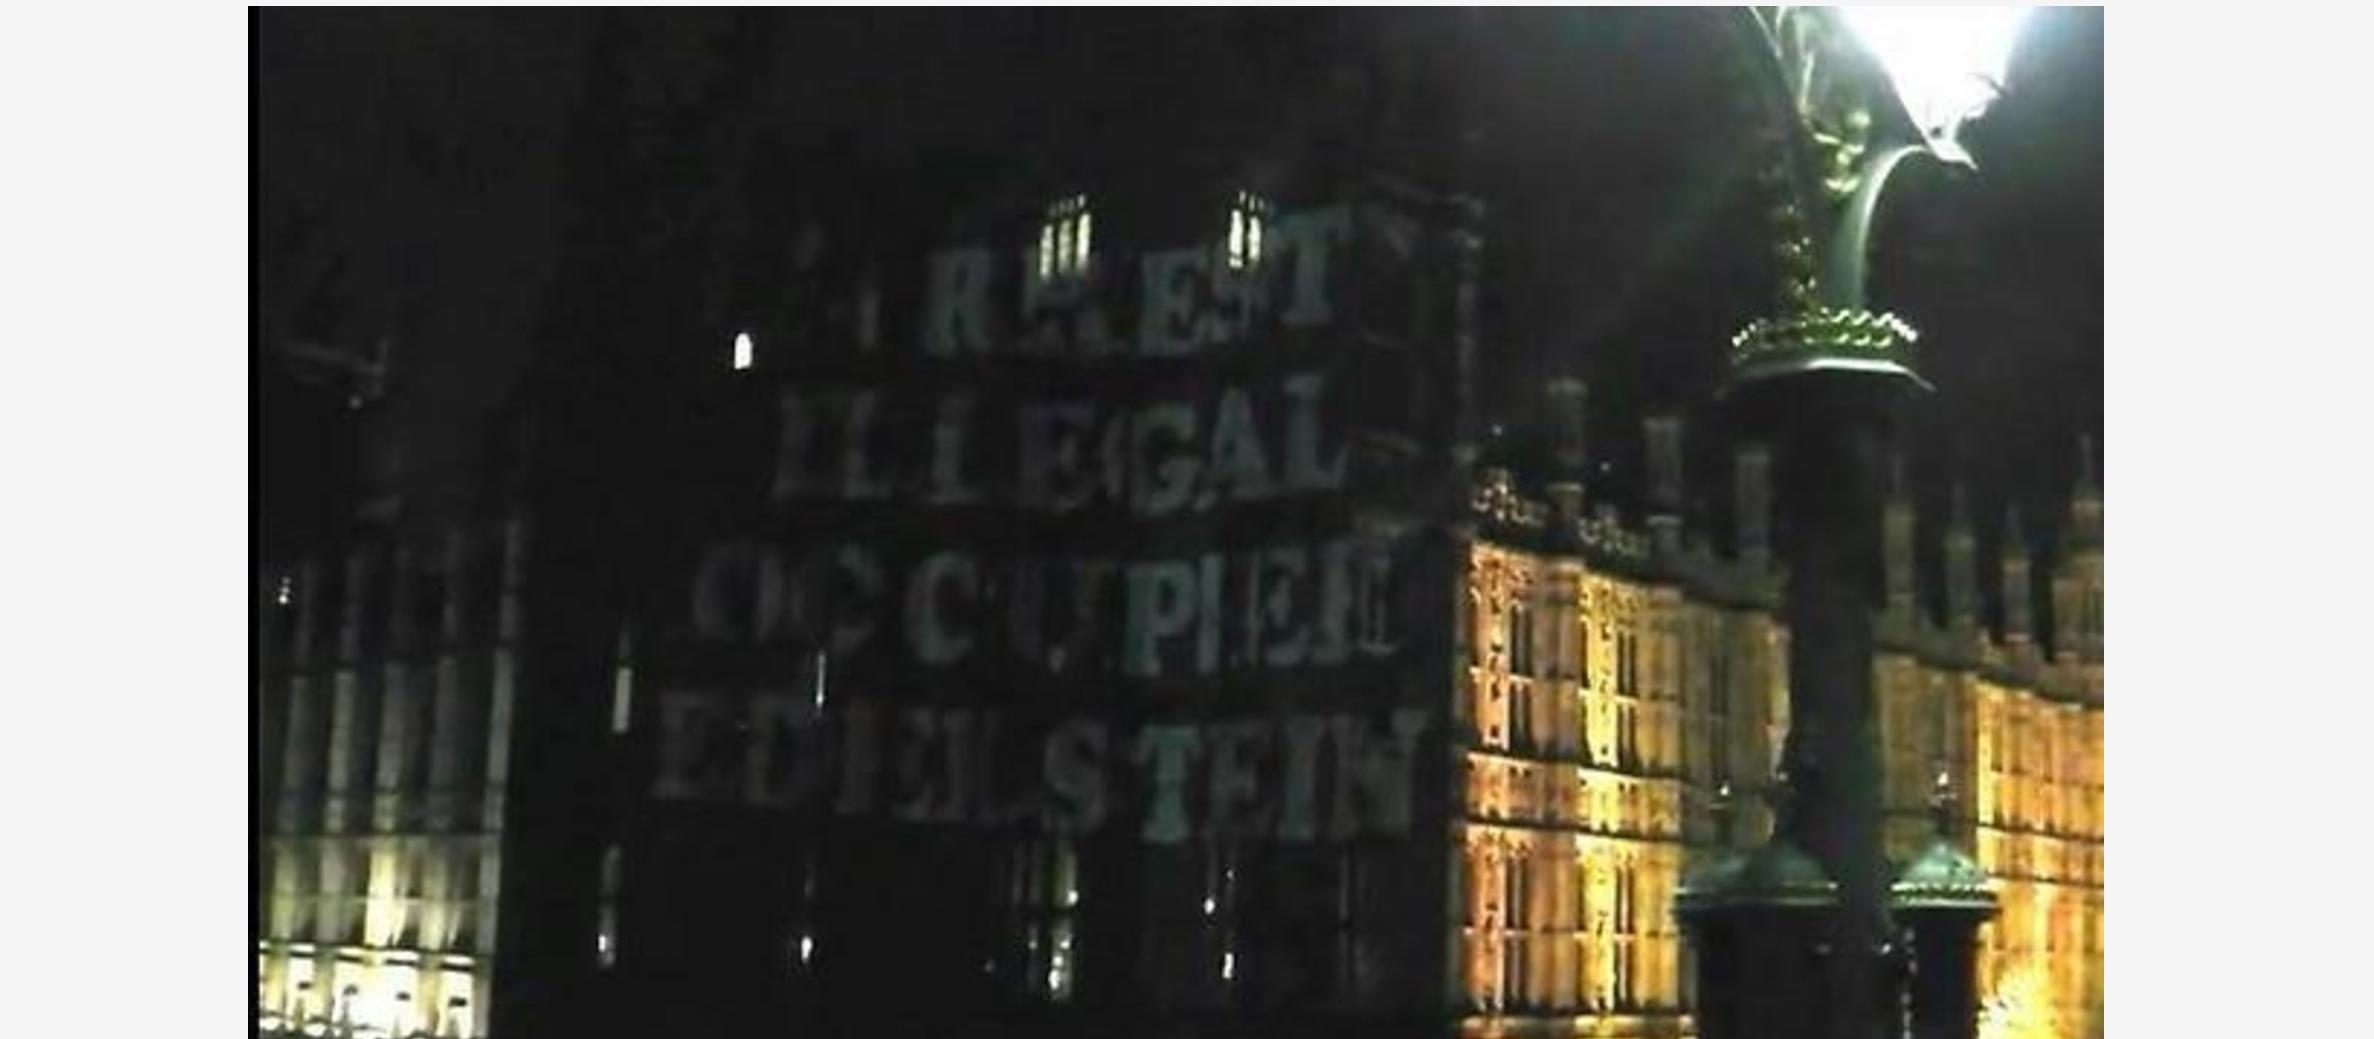 Anti-Israel activists project hostile messages on Houses of Parliament ahead of Knesset speaker visit